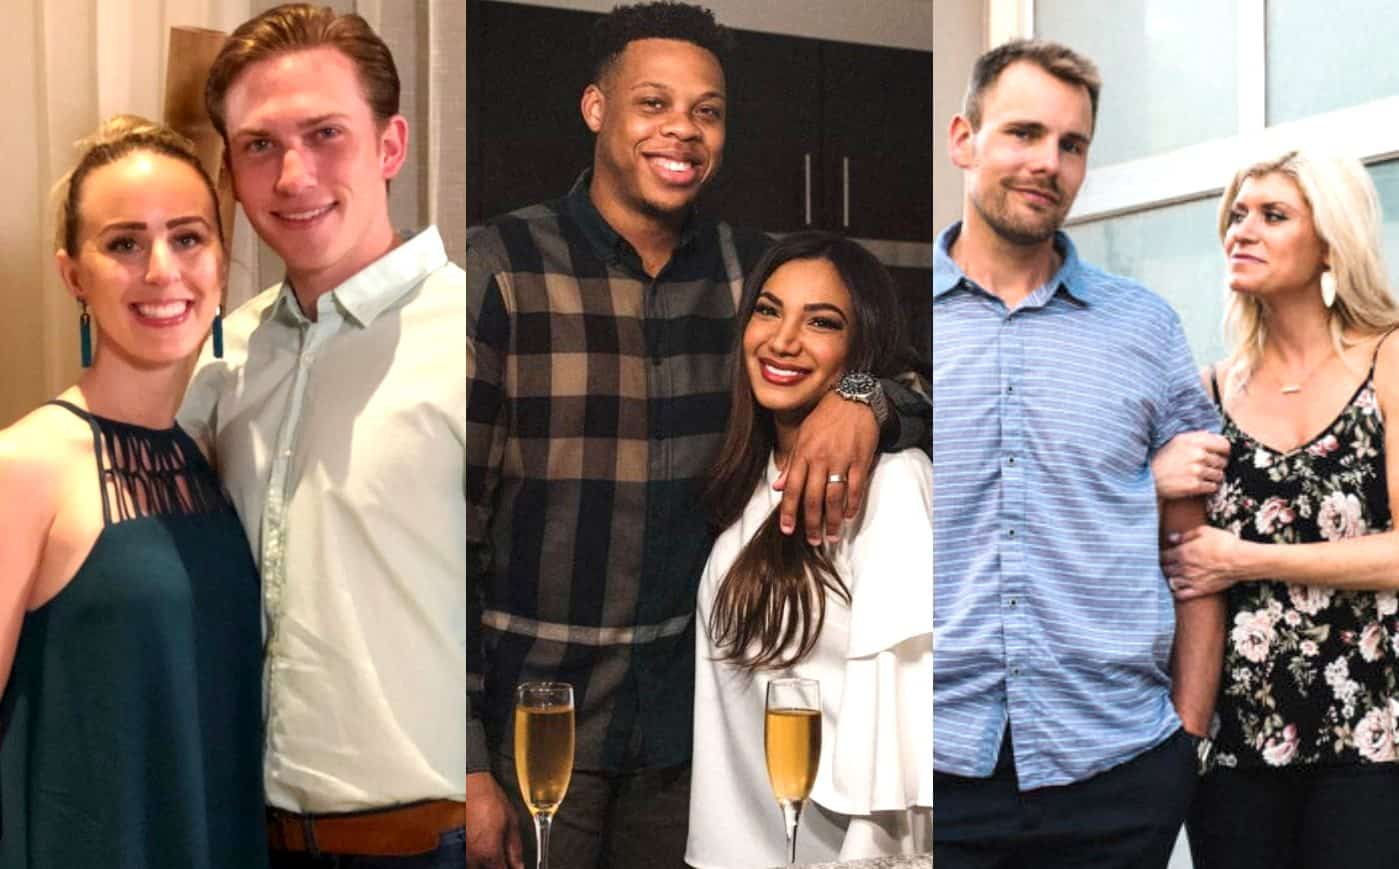 Married At First Sight Season 7 Cast Update: Where Are They Now?